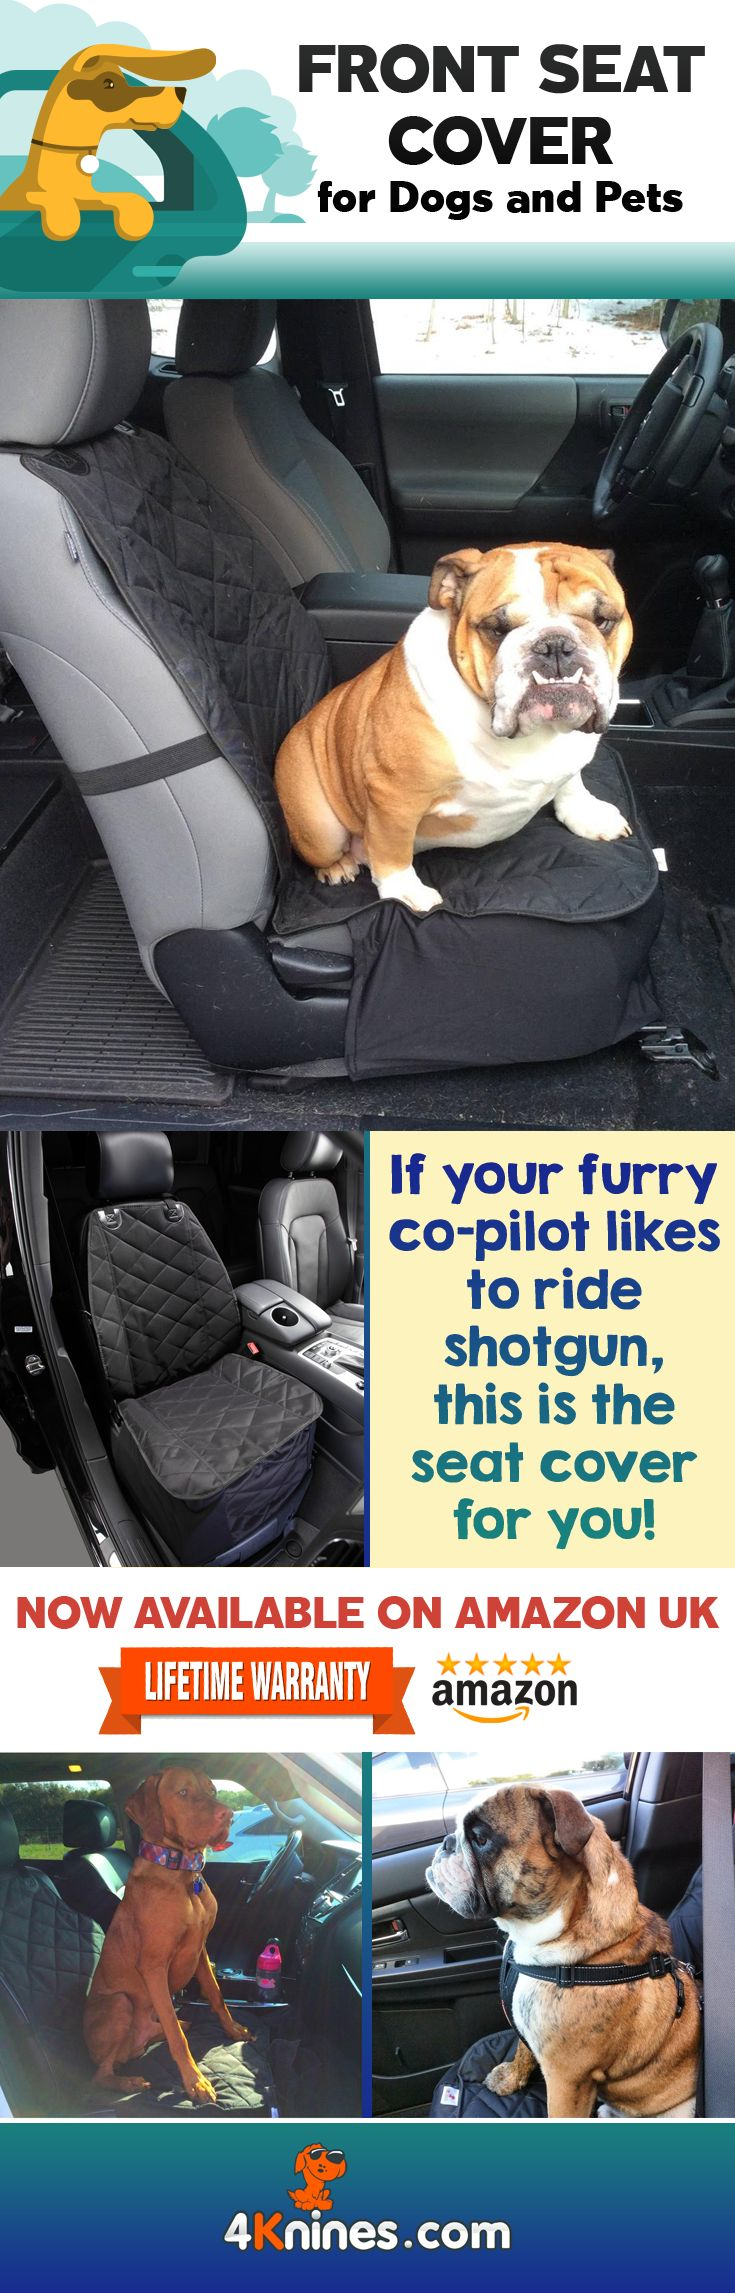 If your furry friend likes to call shotgun, 4Knines Front Seat Covers will protect your seat and keep it presentable for your 2 legged passengers. https://www.amazon.co.uk/4Knines-Bucket-Cover-Trucks-Black/dp/B00KAFYNTE/